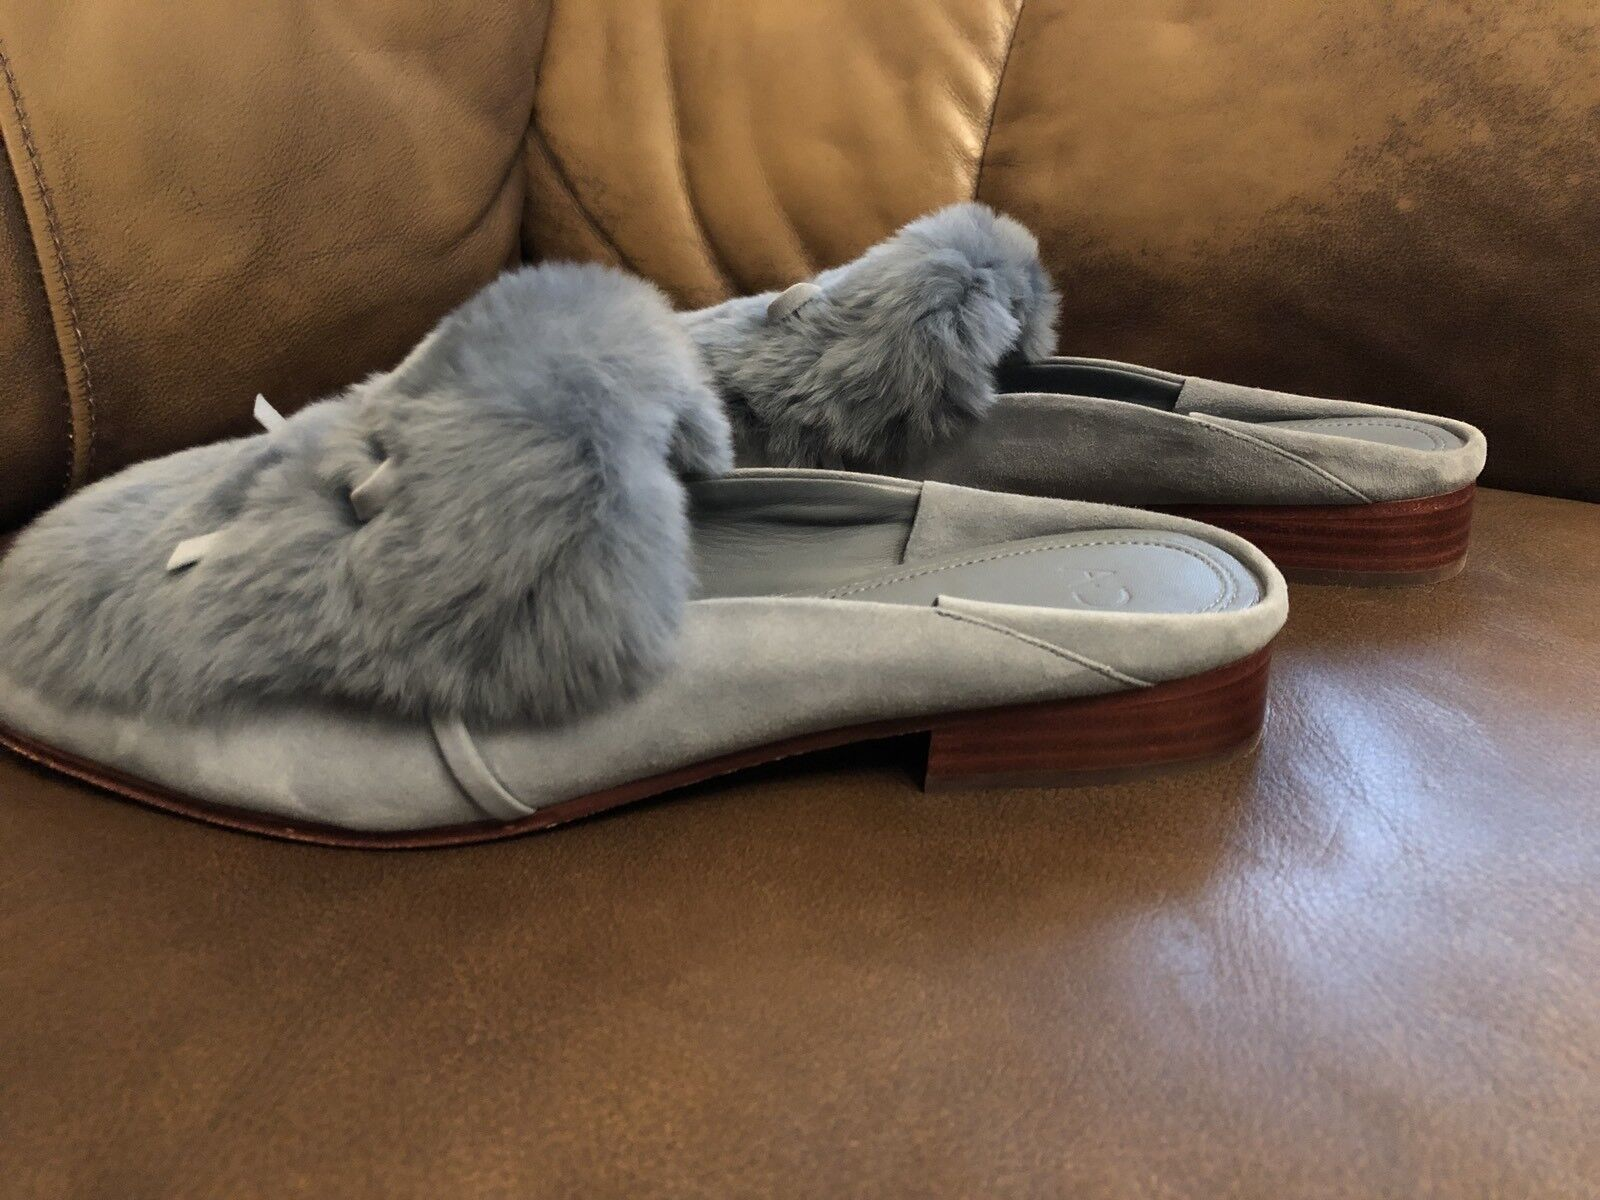 Woman Inexpensive AD & Daughters Grigon Suede Rabbit Fur Dr  Flats 9.5  Dr 228.00 5ce594